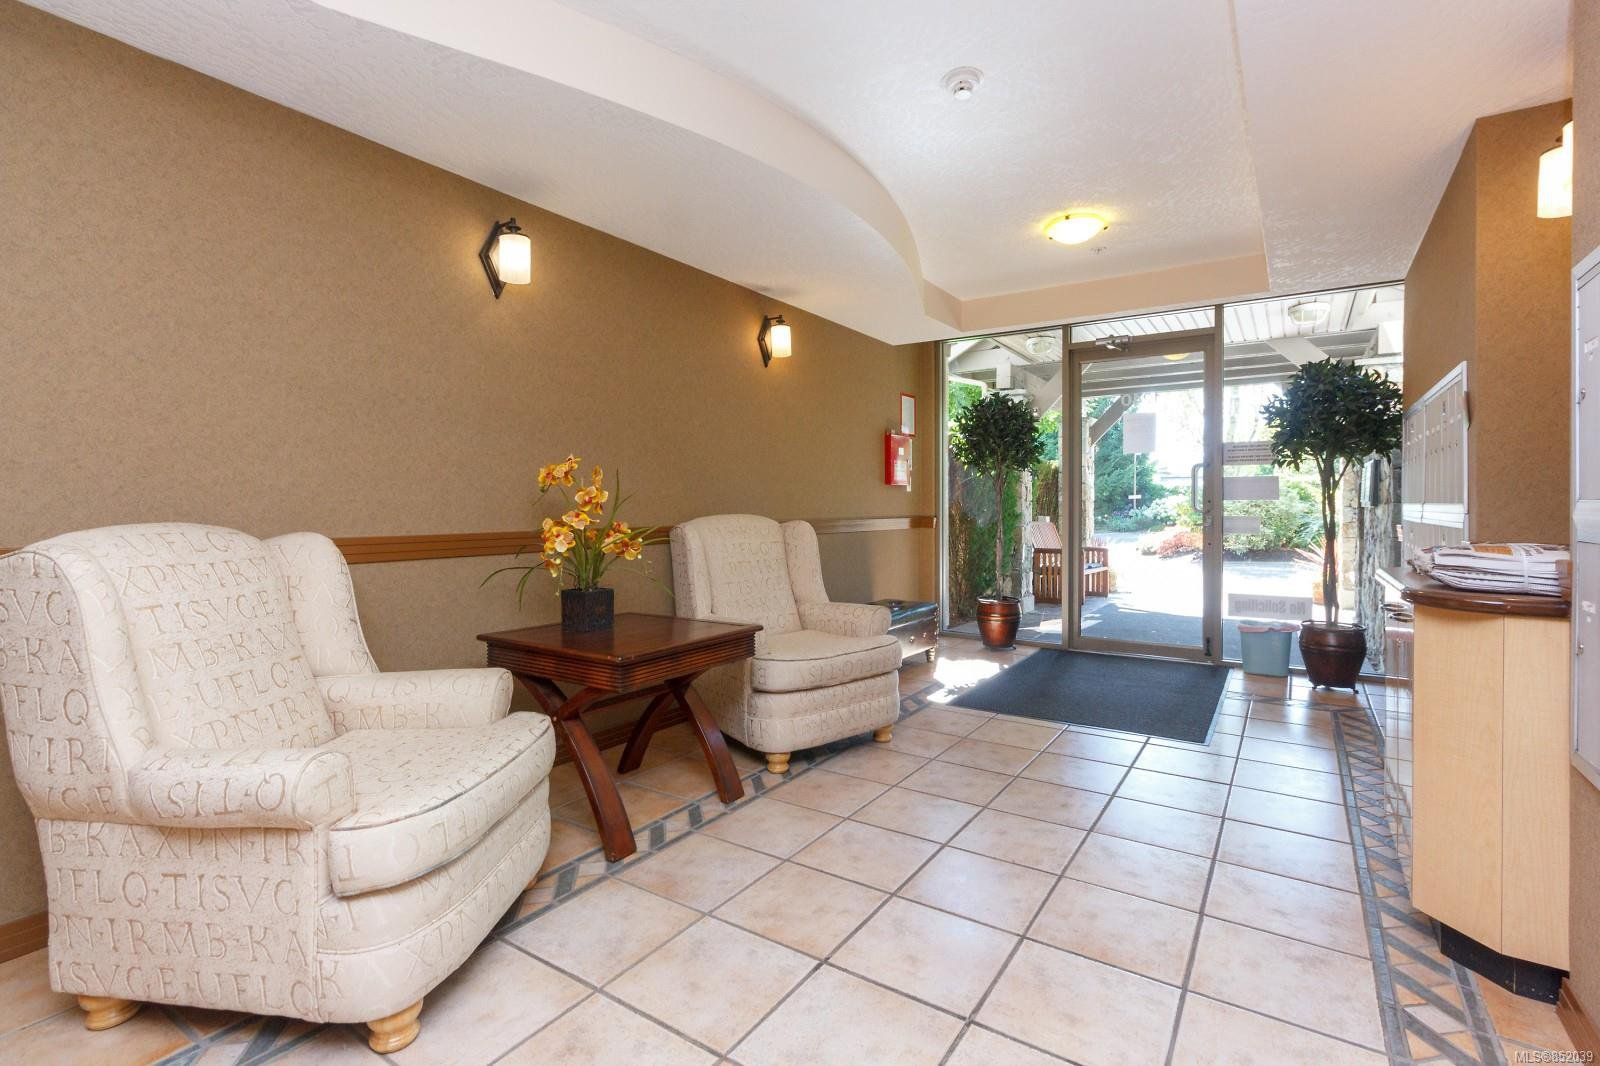 Photo 6: Photos: 109 1240 Verdier Ave in : CS Brentwood Bay Condo for sale (Central Saanich)  : MLS®# 852039